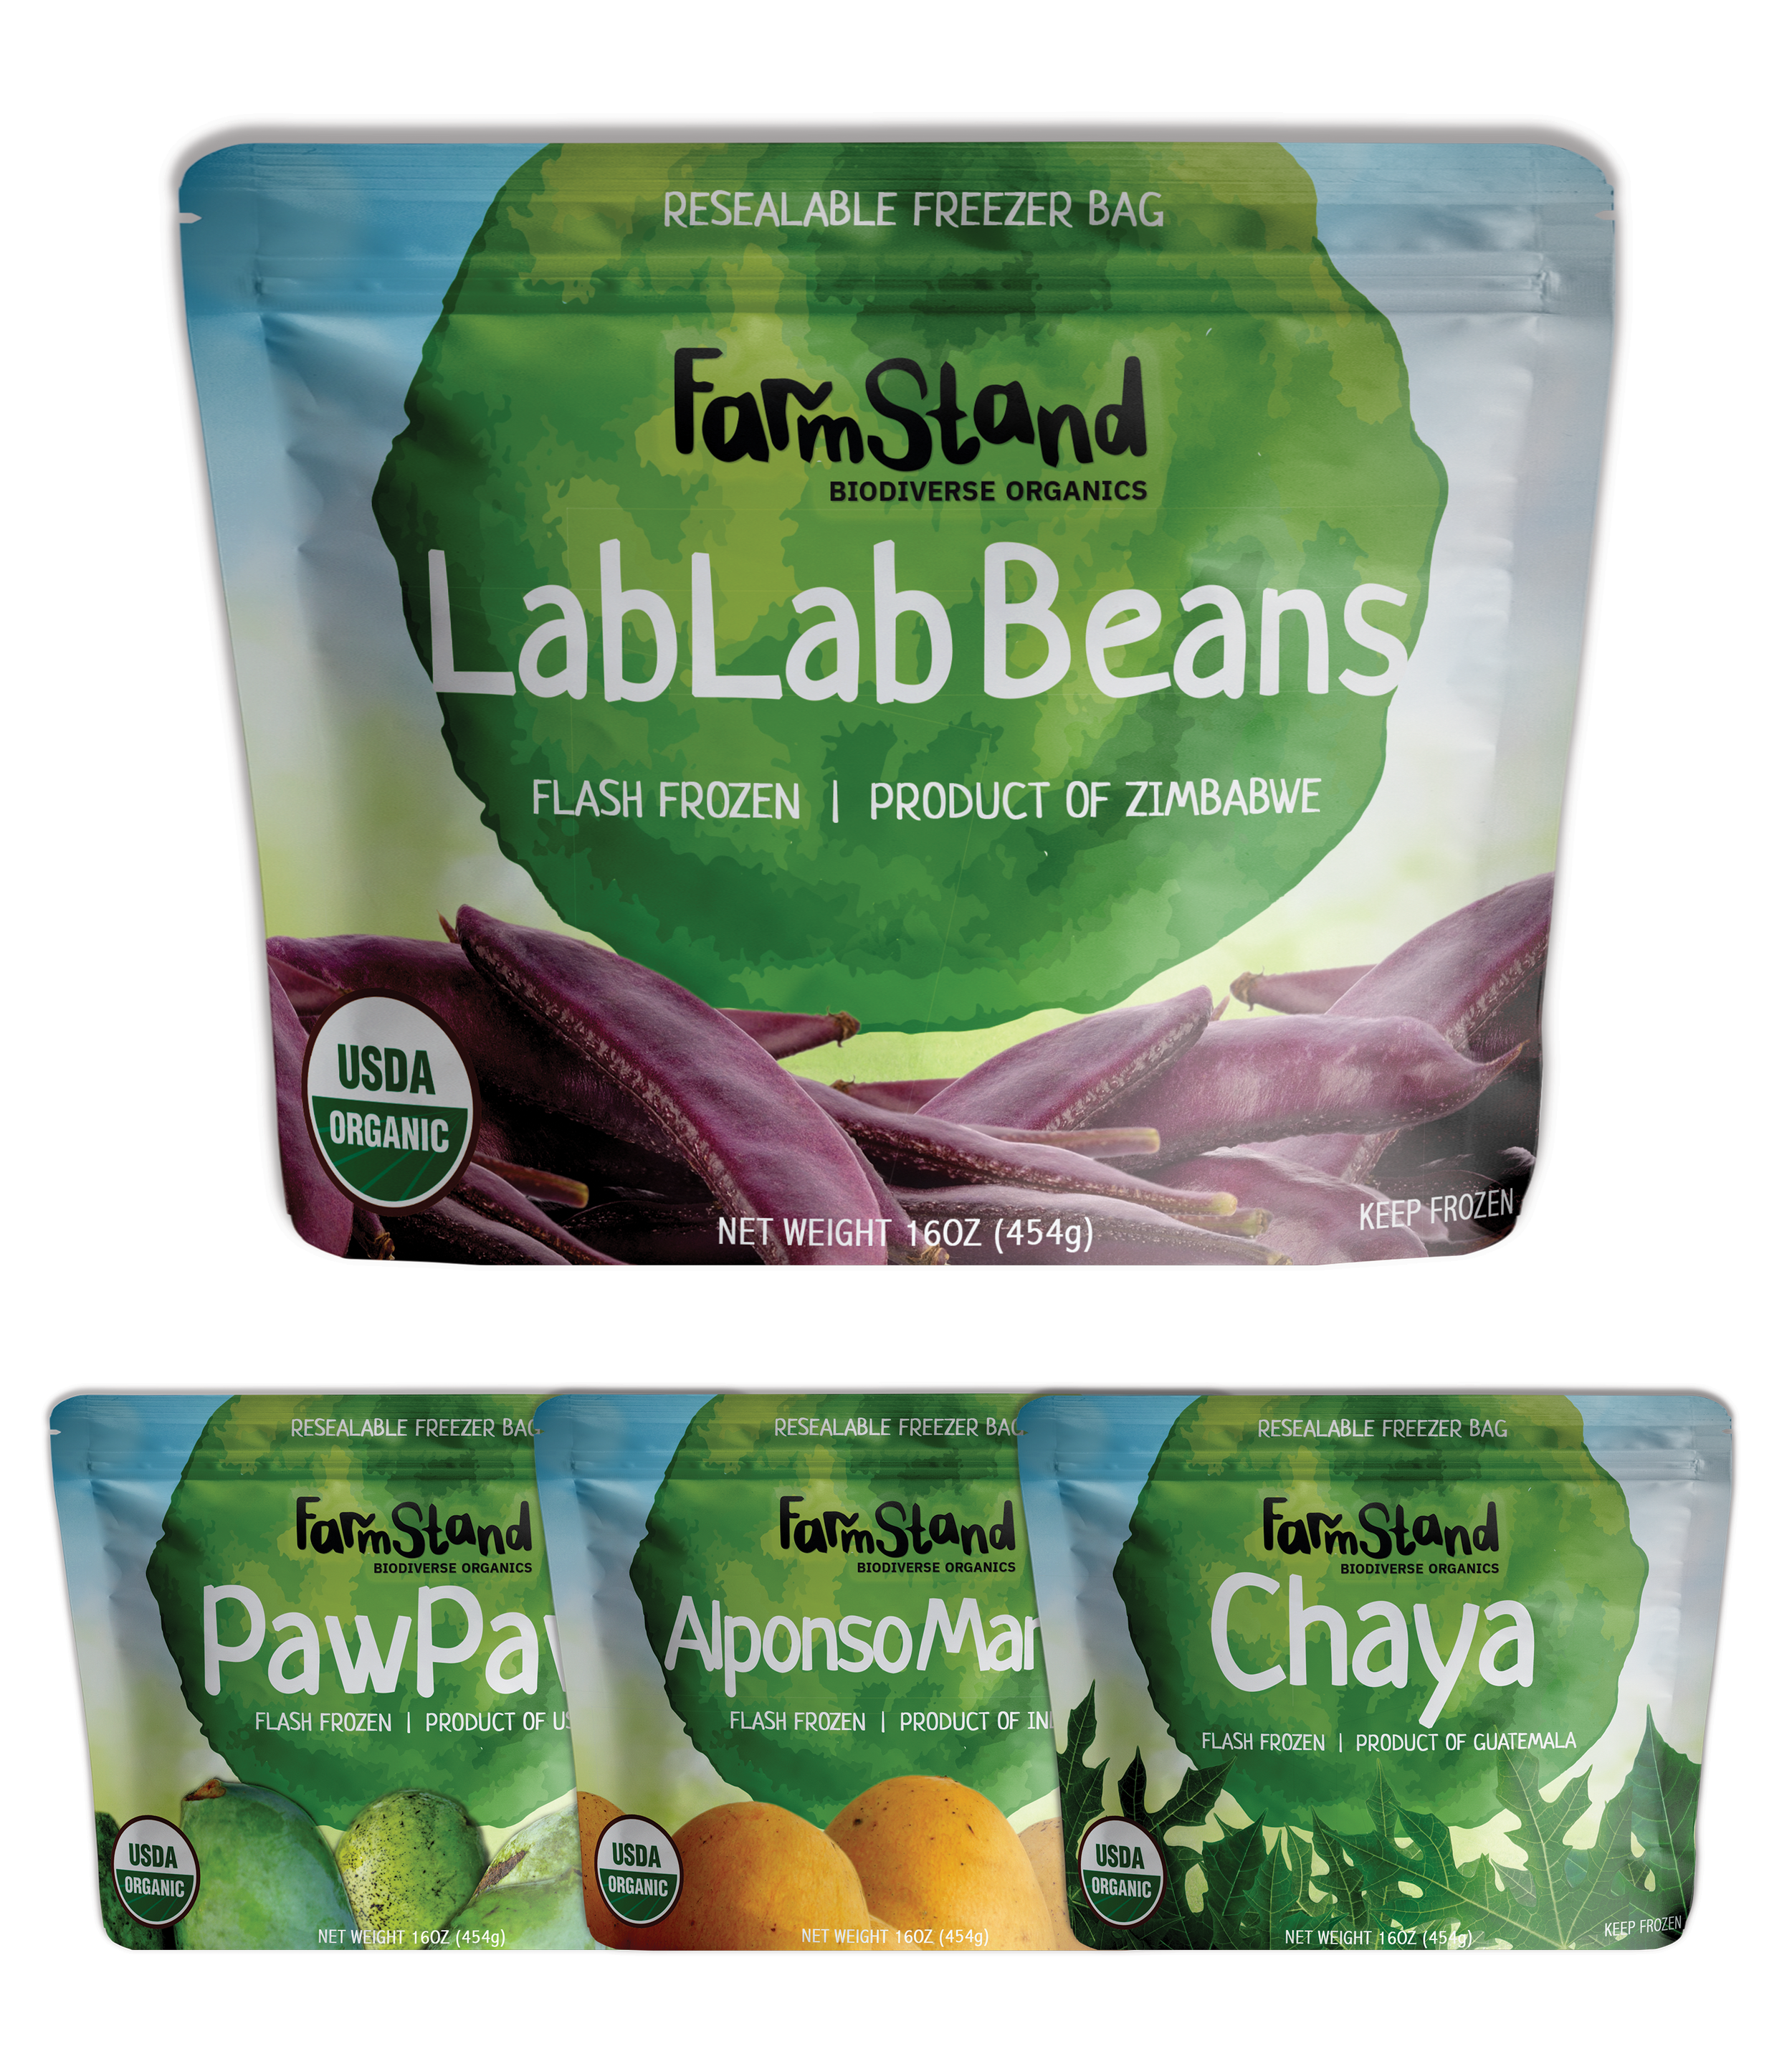 Farmstand    Farmstand Biodiverse Organics is the world leader in promoting a more biodiverse and delicious freezer section. Our flash frozen fruits and vegetables from around the world lock in these foods at their peak freshness to be enjoyed whenever the occasion strikes for you.